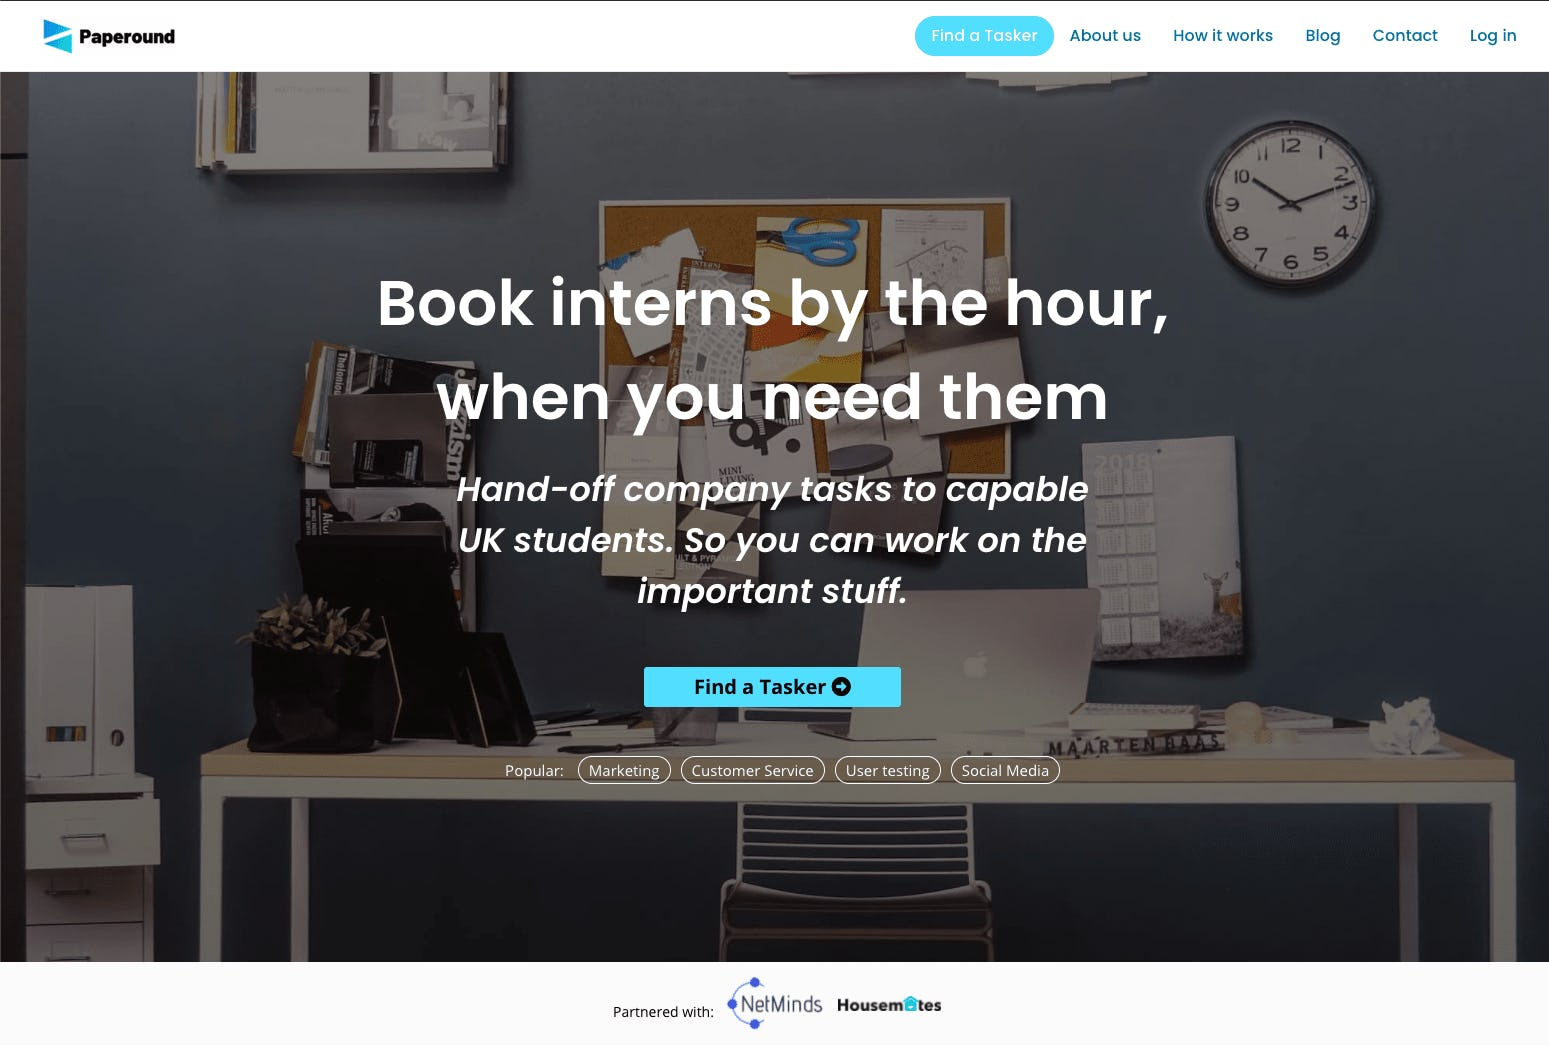 Screenshot of the service marketplace Paperound's landing page header featuring an office desk.